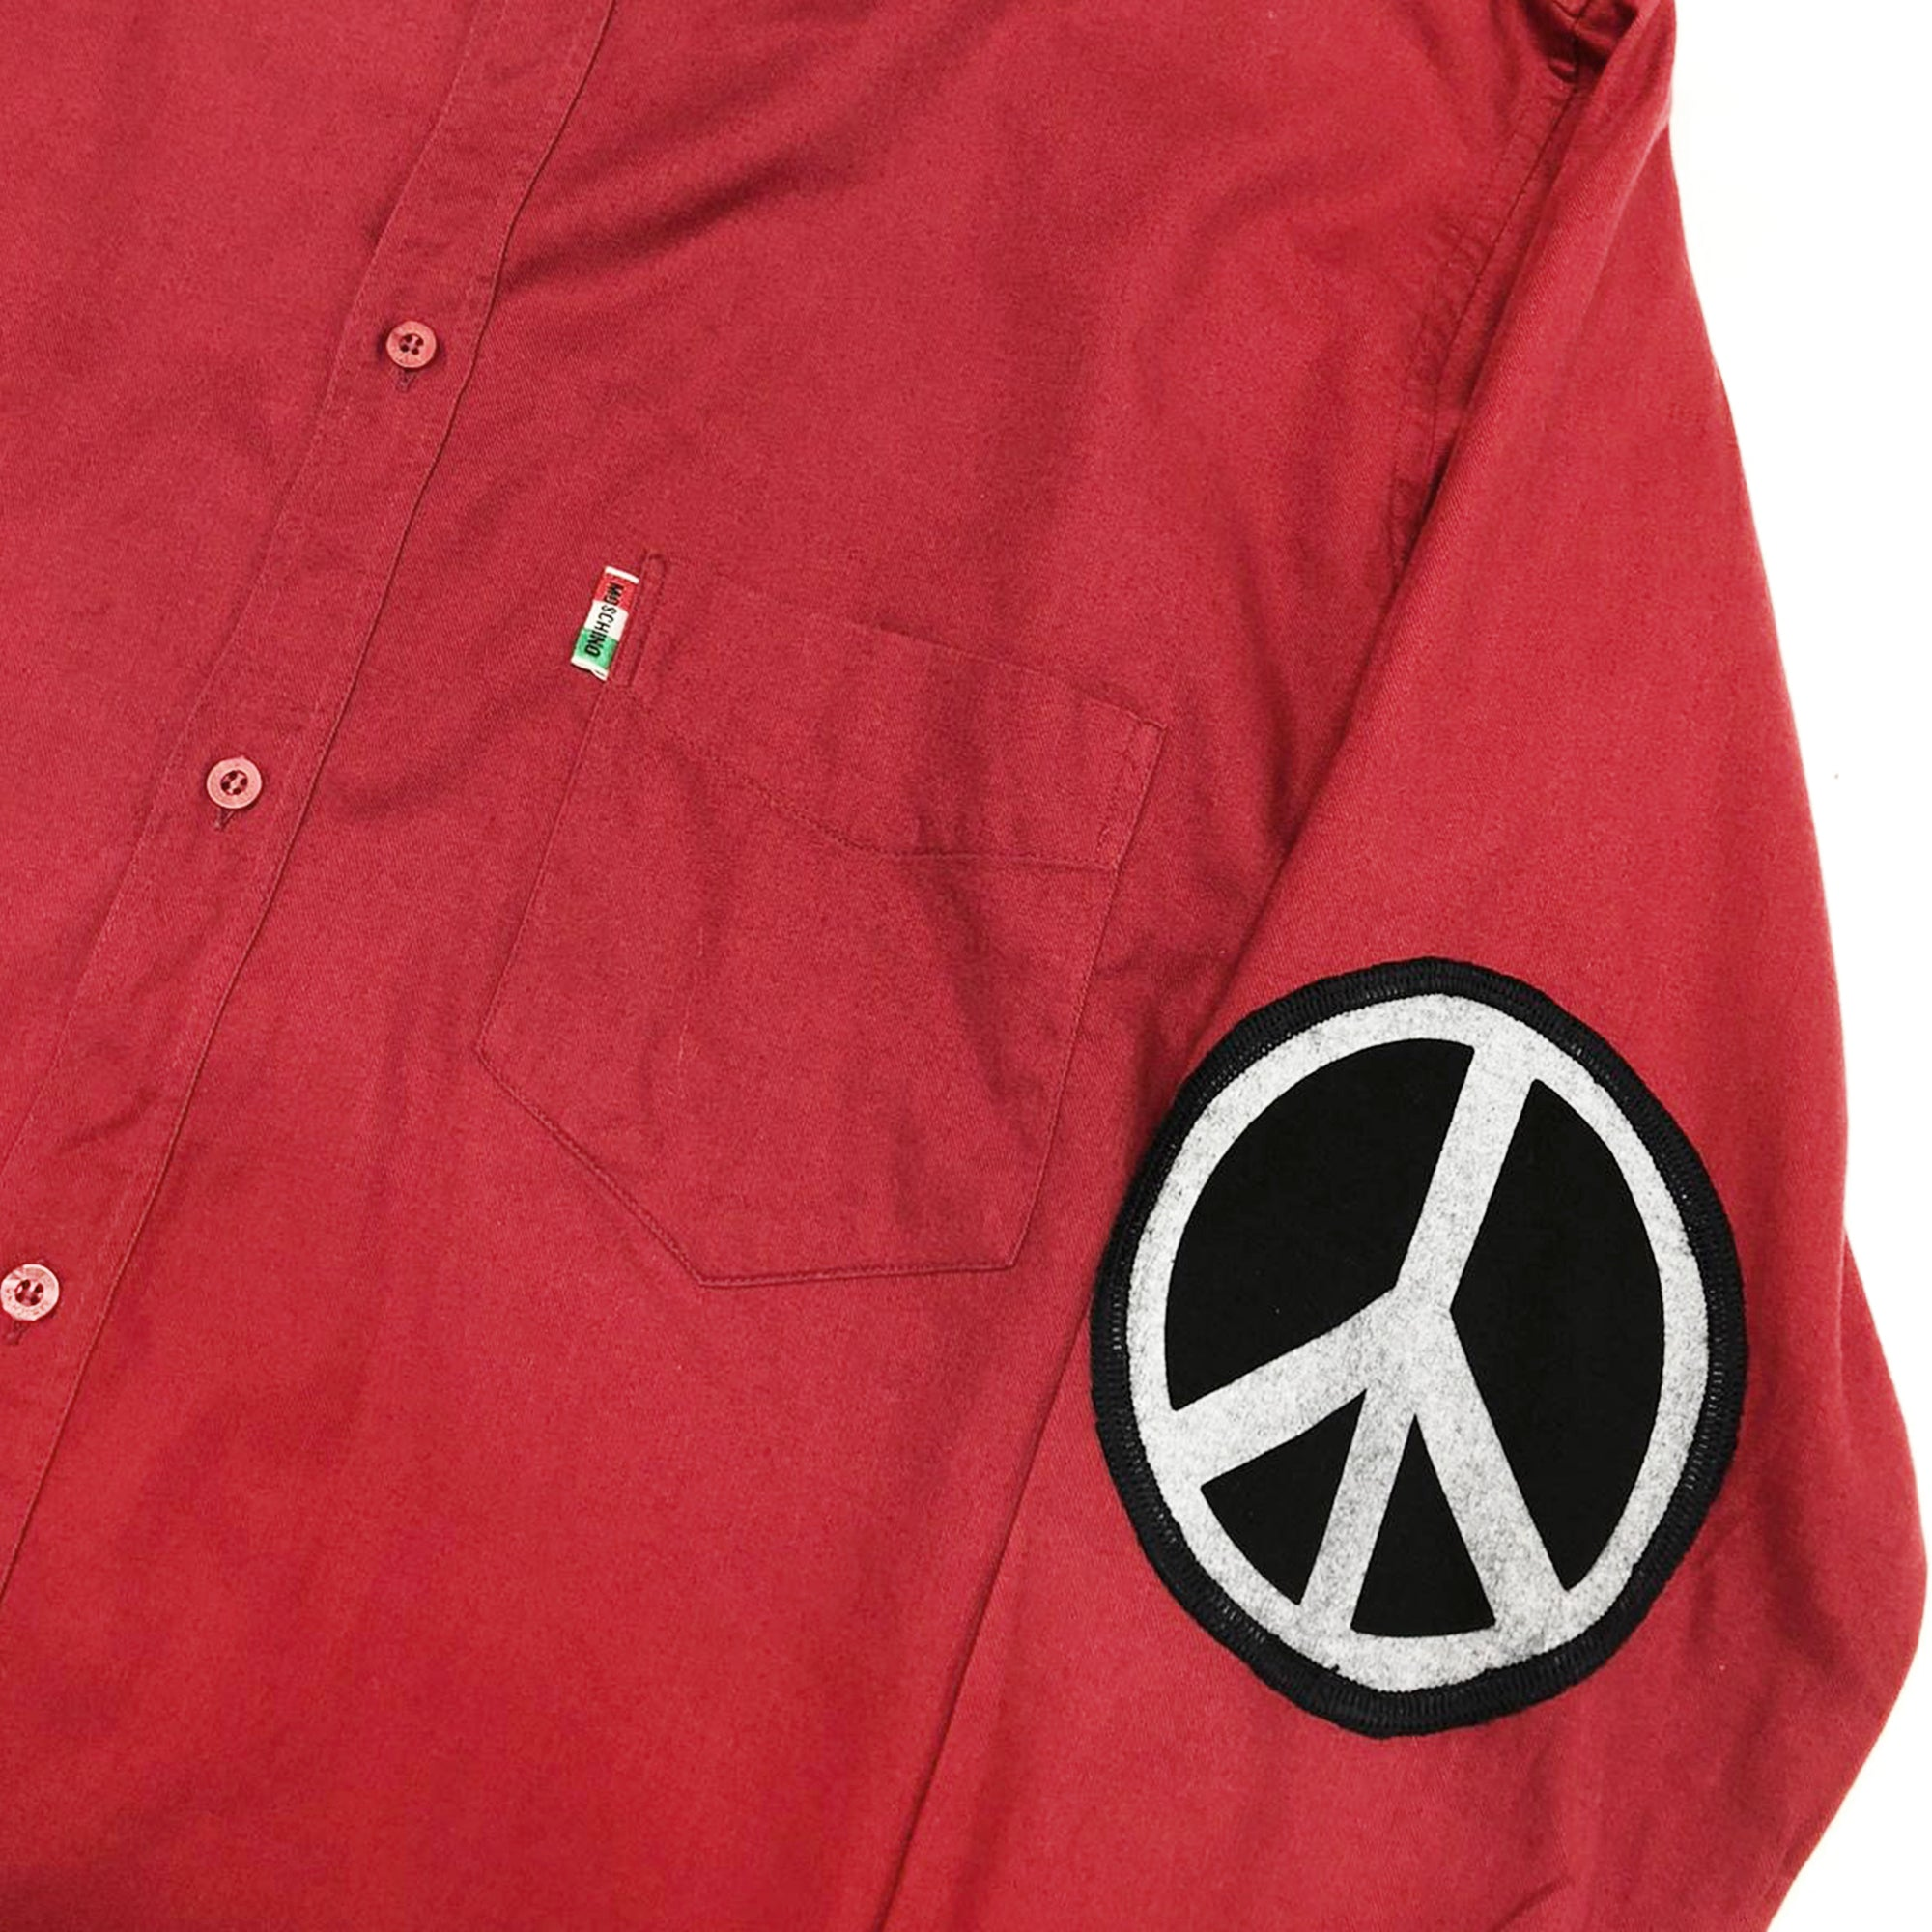 Moschino Peace Shirt (Red) UK 14